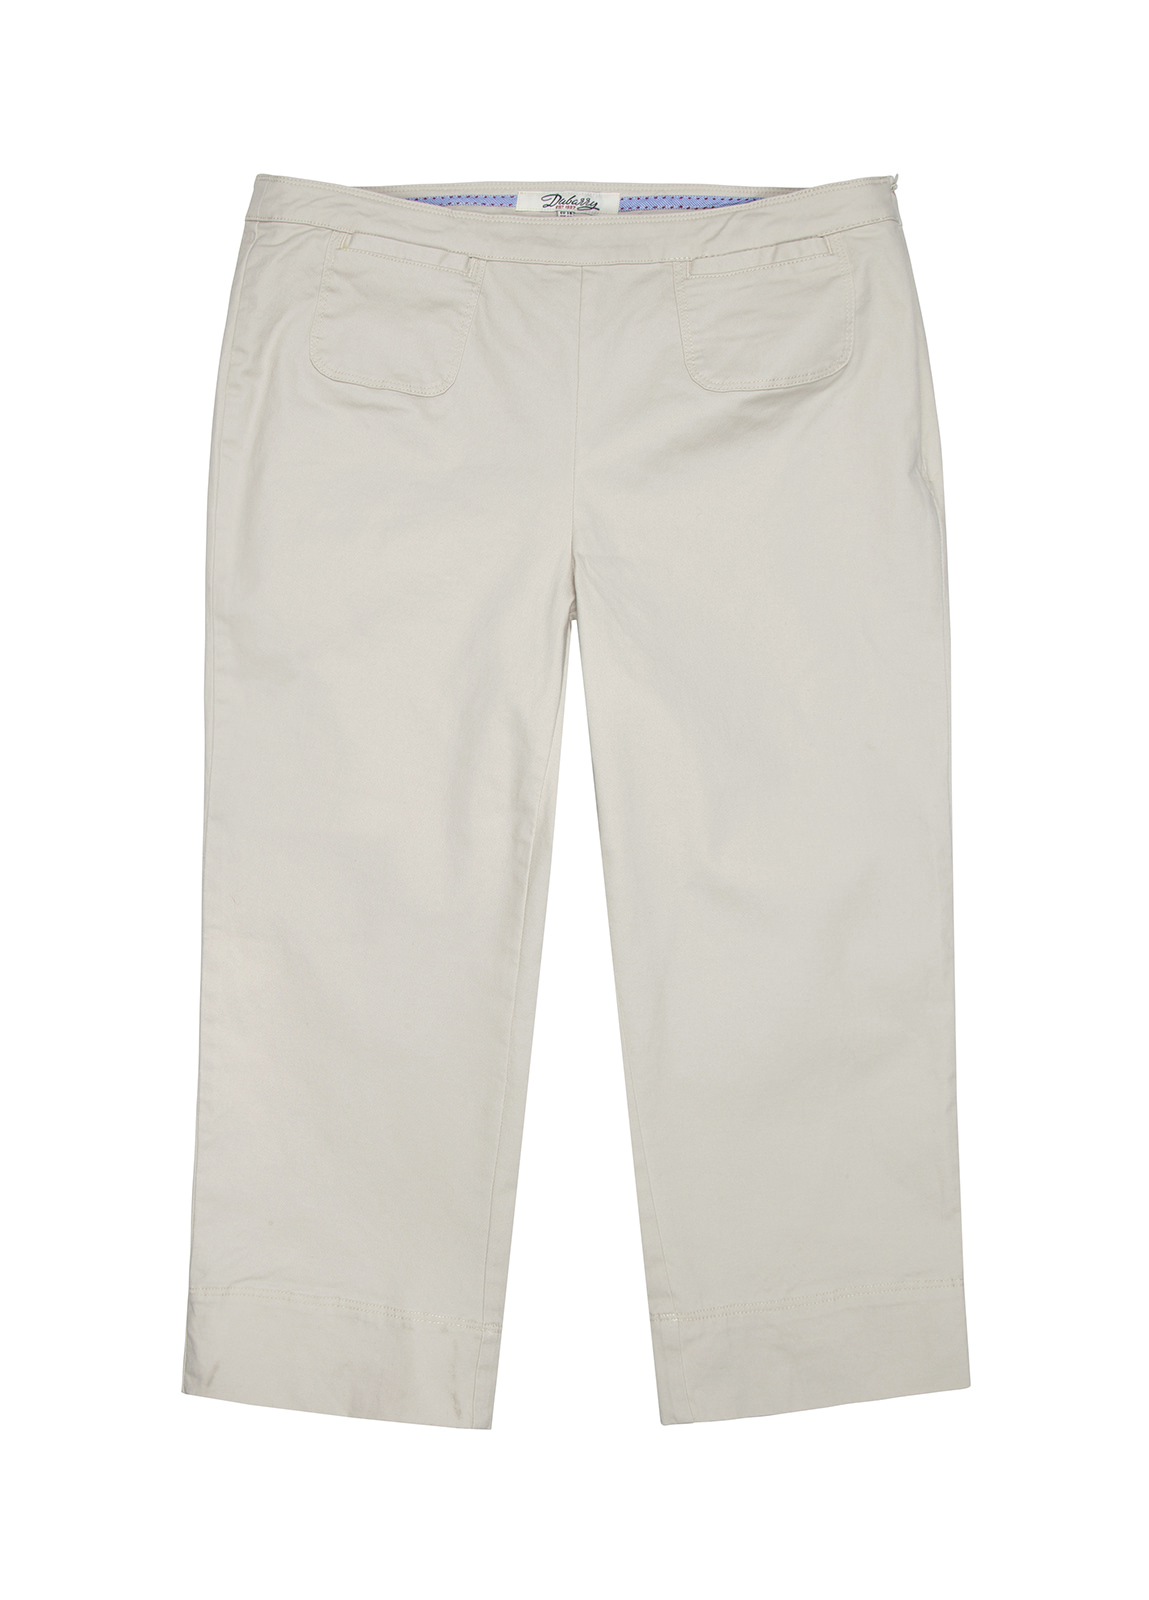 Dubarry_Bluebell Cropped Trousers - Oyster_Image_2